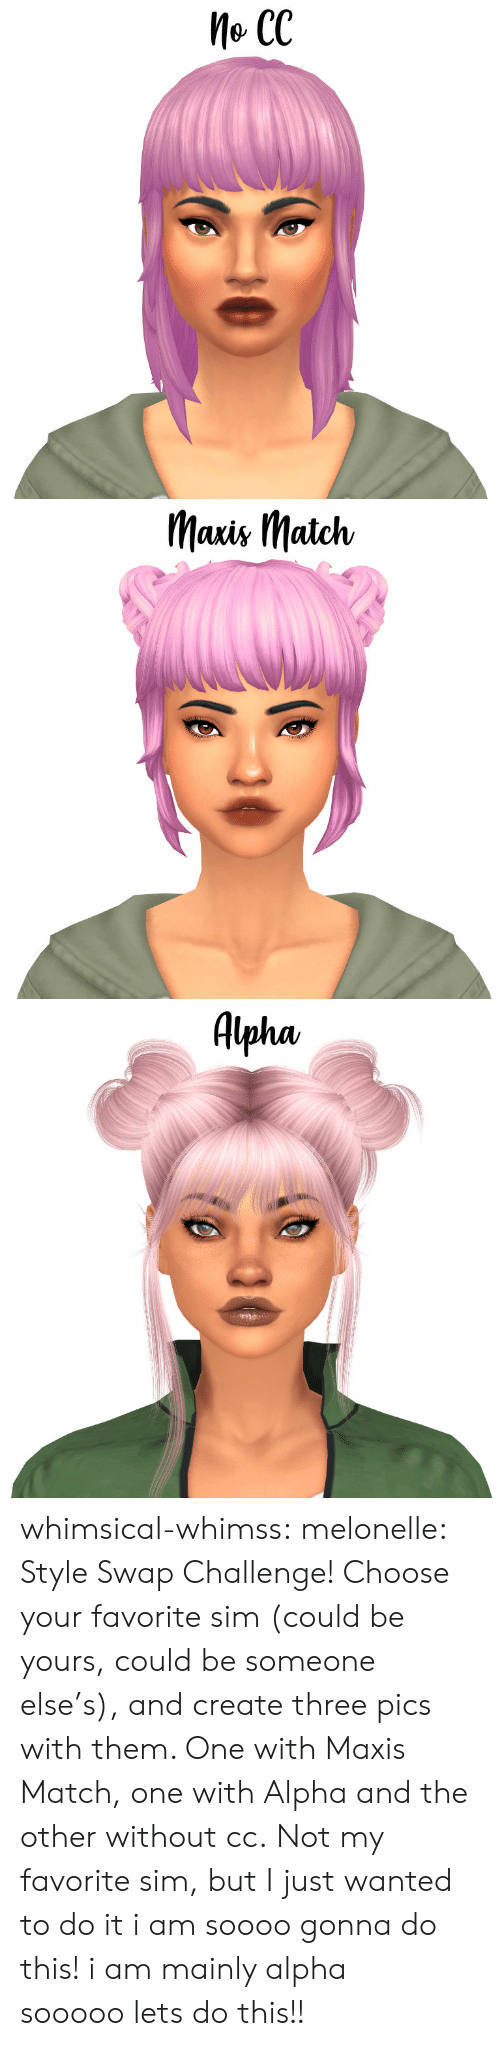 Choose Your: Me CC   Mais IMatch   Alpha, whimsical-whimss:  melonelle: Style Swap Challenge! Choose your favorite sim (could be yours, could be someone else's), and create three pics with them. One with Maxis Match, one with Alpha and the other without cc.Not my favorite sim, but I just wanted to do it  i am soooogonna do this! i am mainly alpha sooooolets do this!!